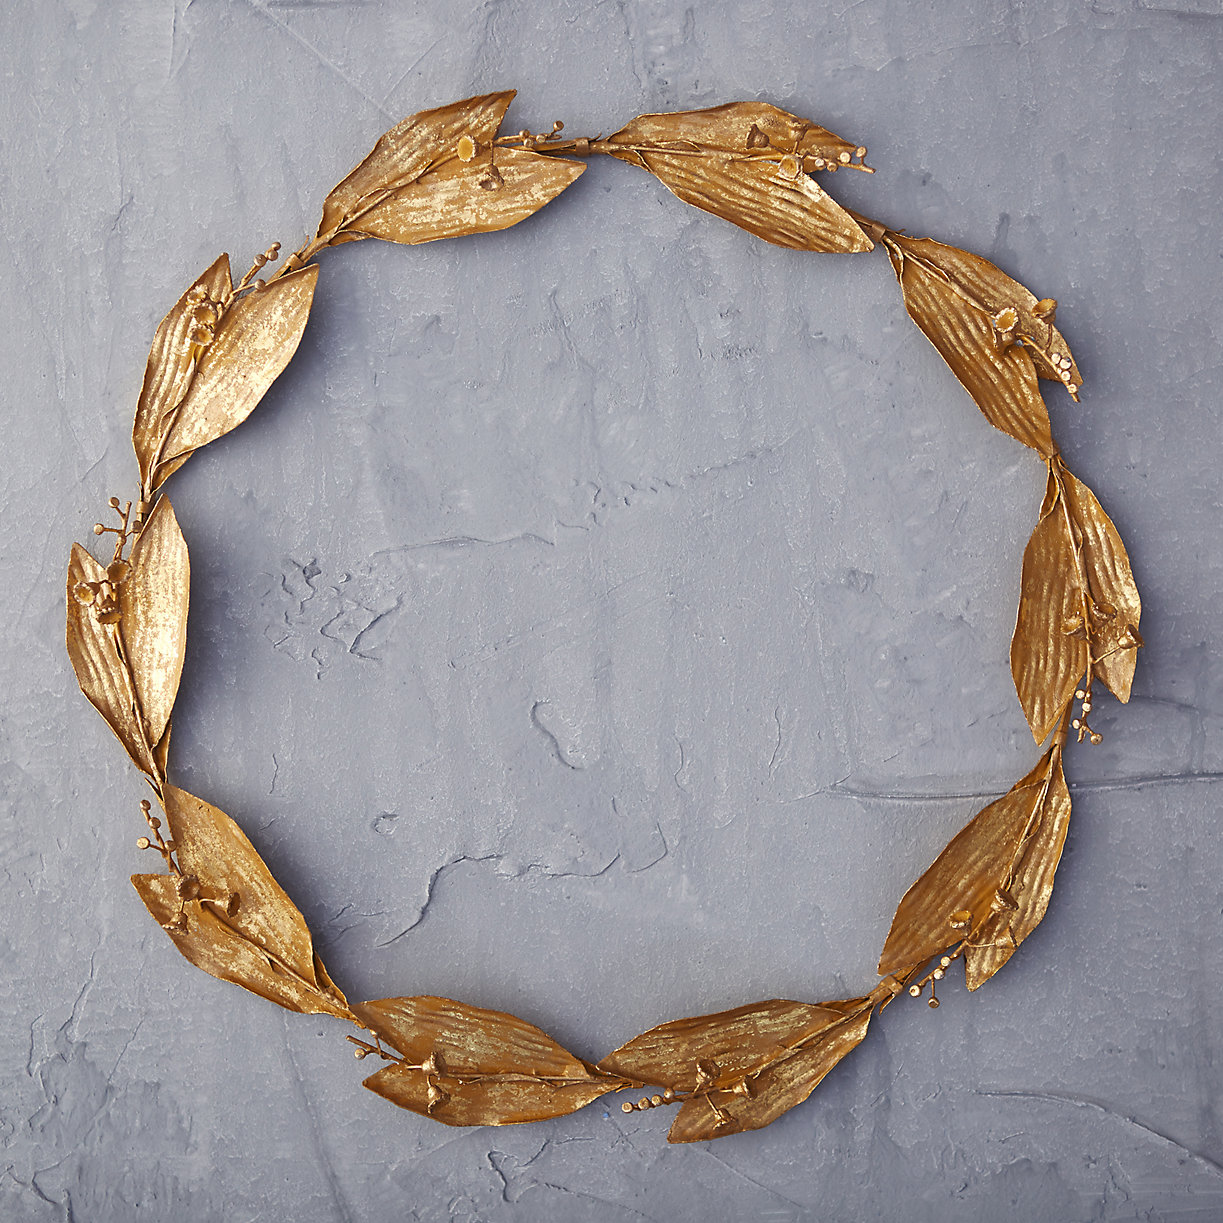 Gold lily wreath from Terrain